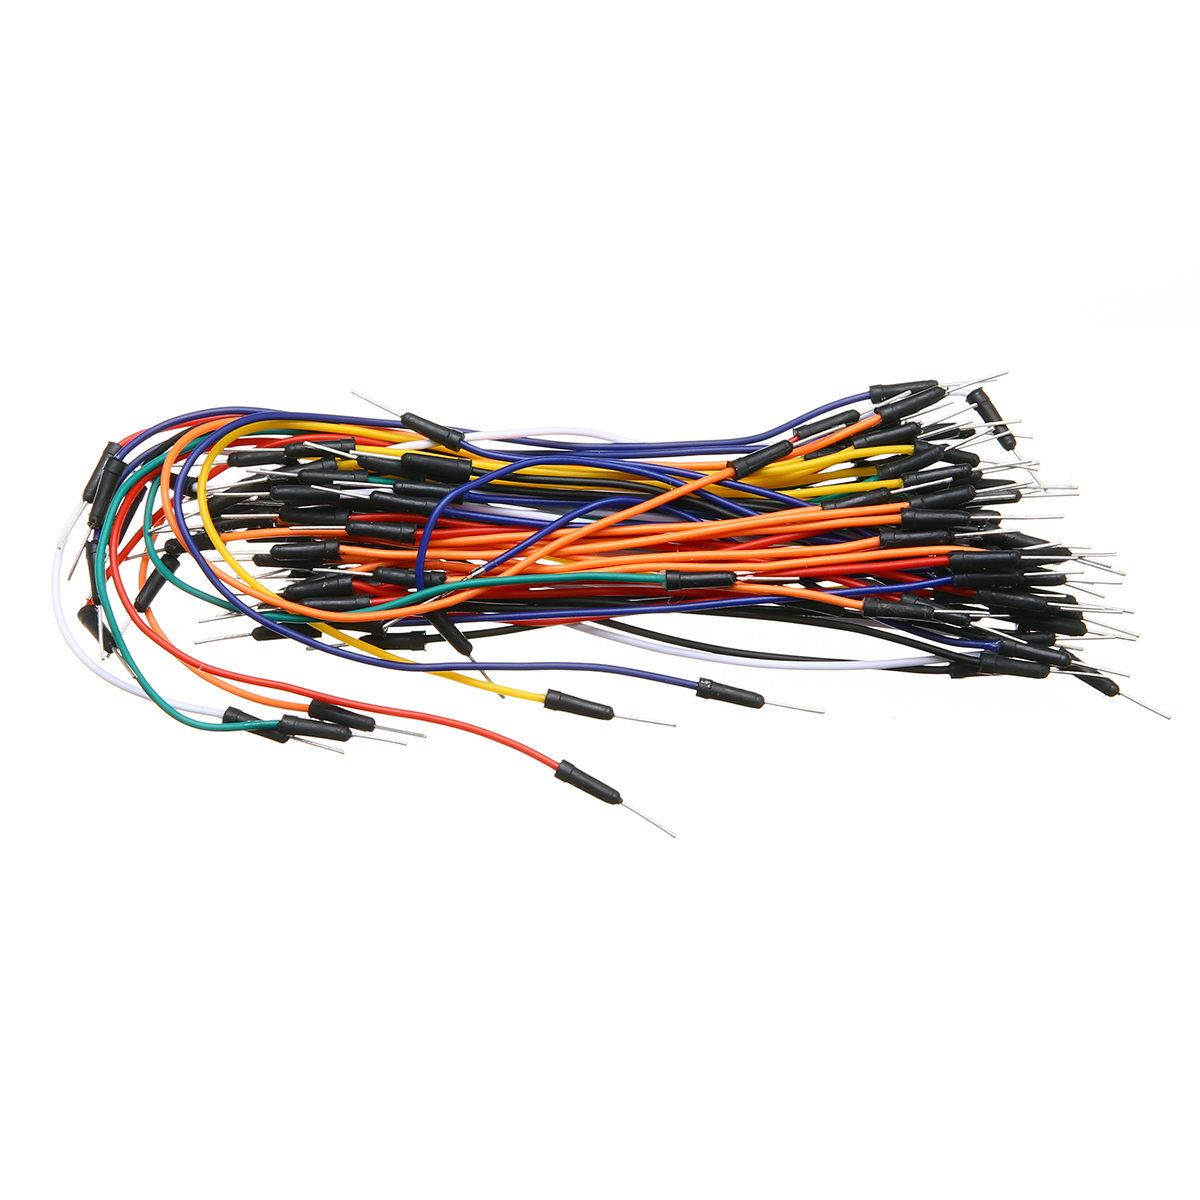 65pcs/Lot Solderless Flexible Breadboard PCB Jumper Cable Wires Set Male to Male Mayitr Electrical Connecting Wires wire